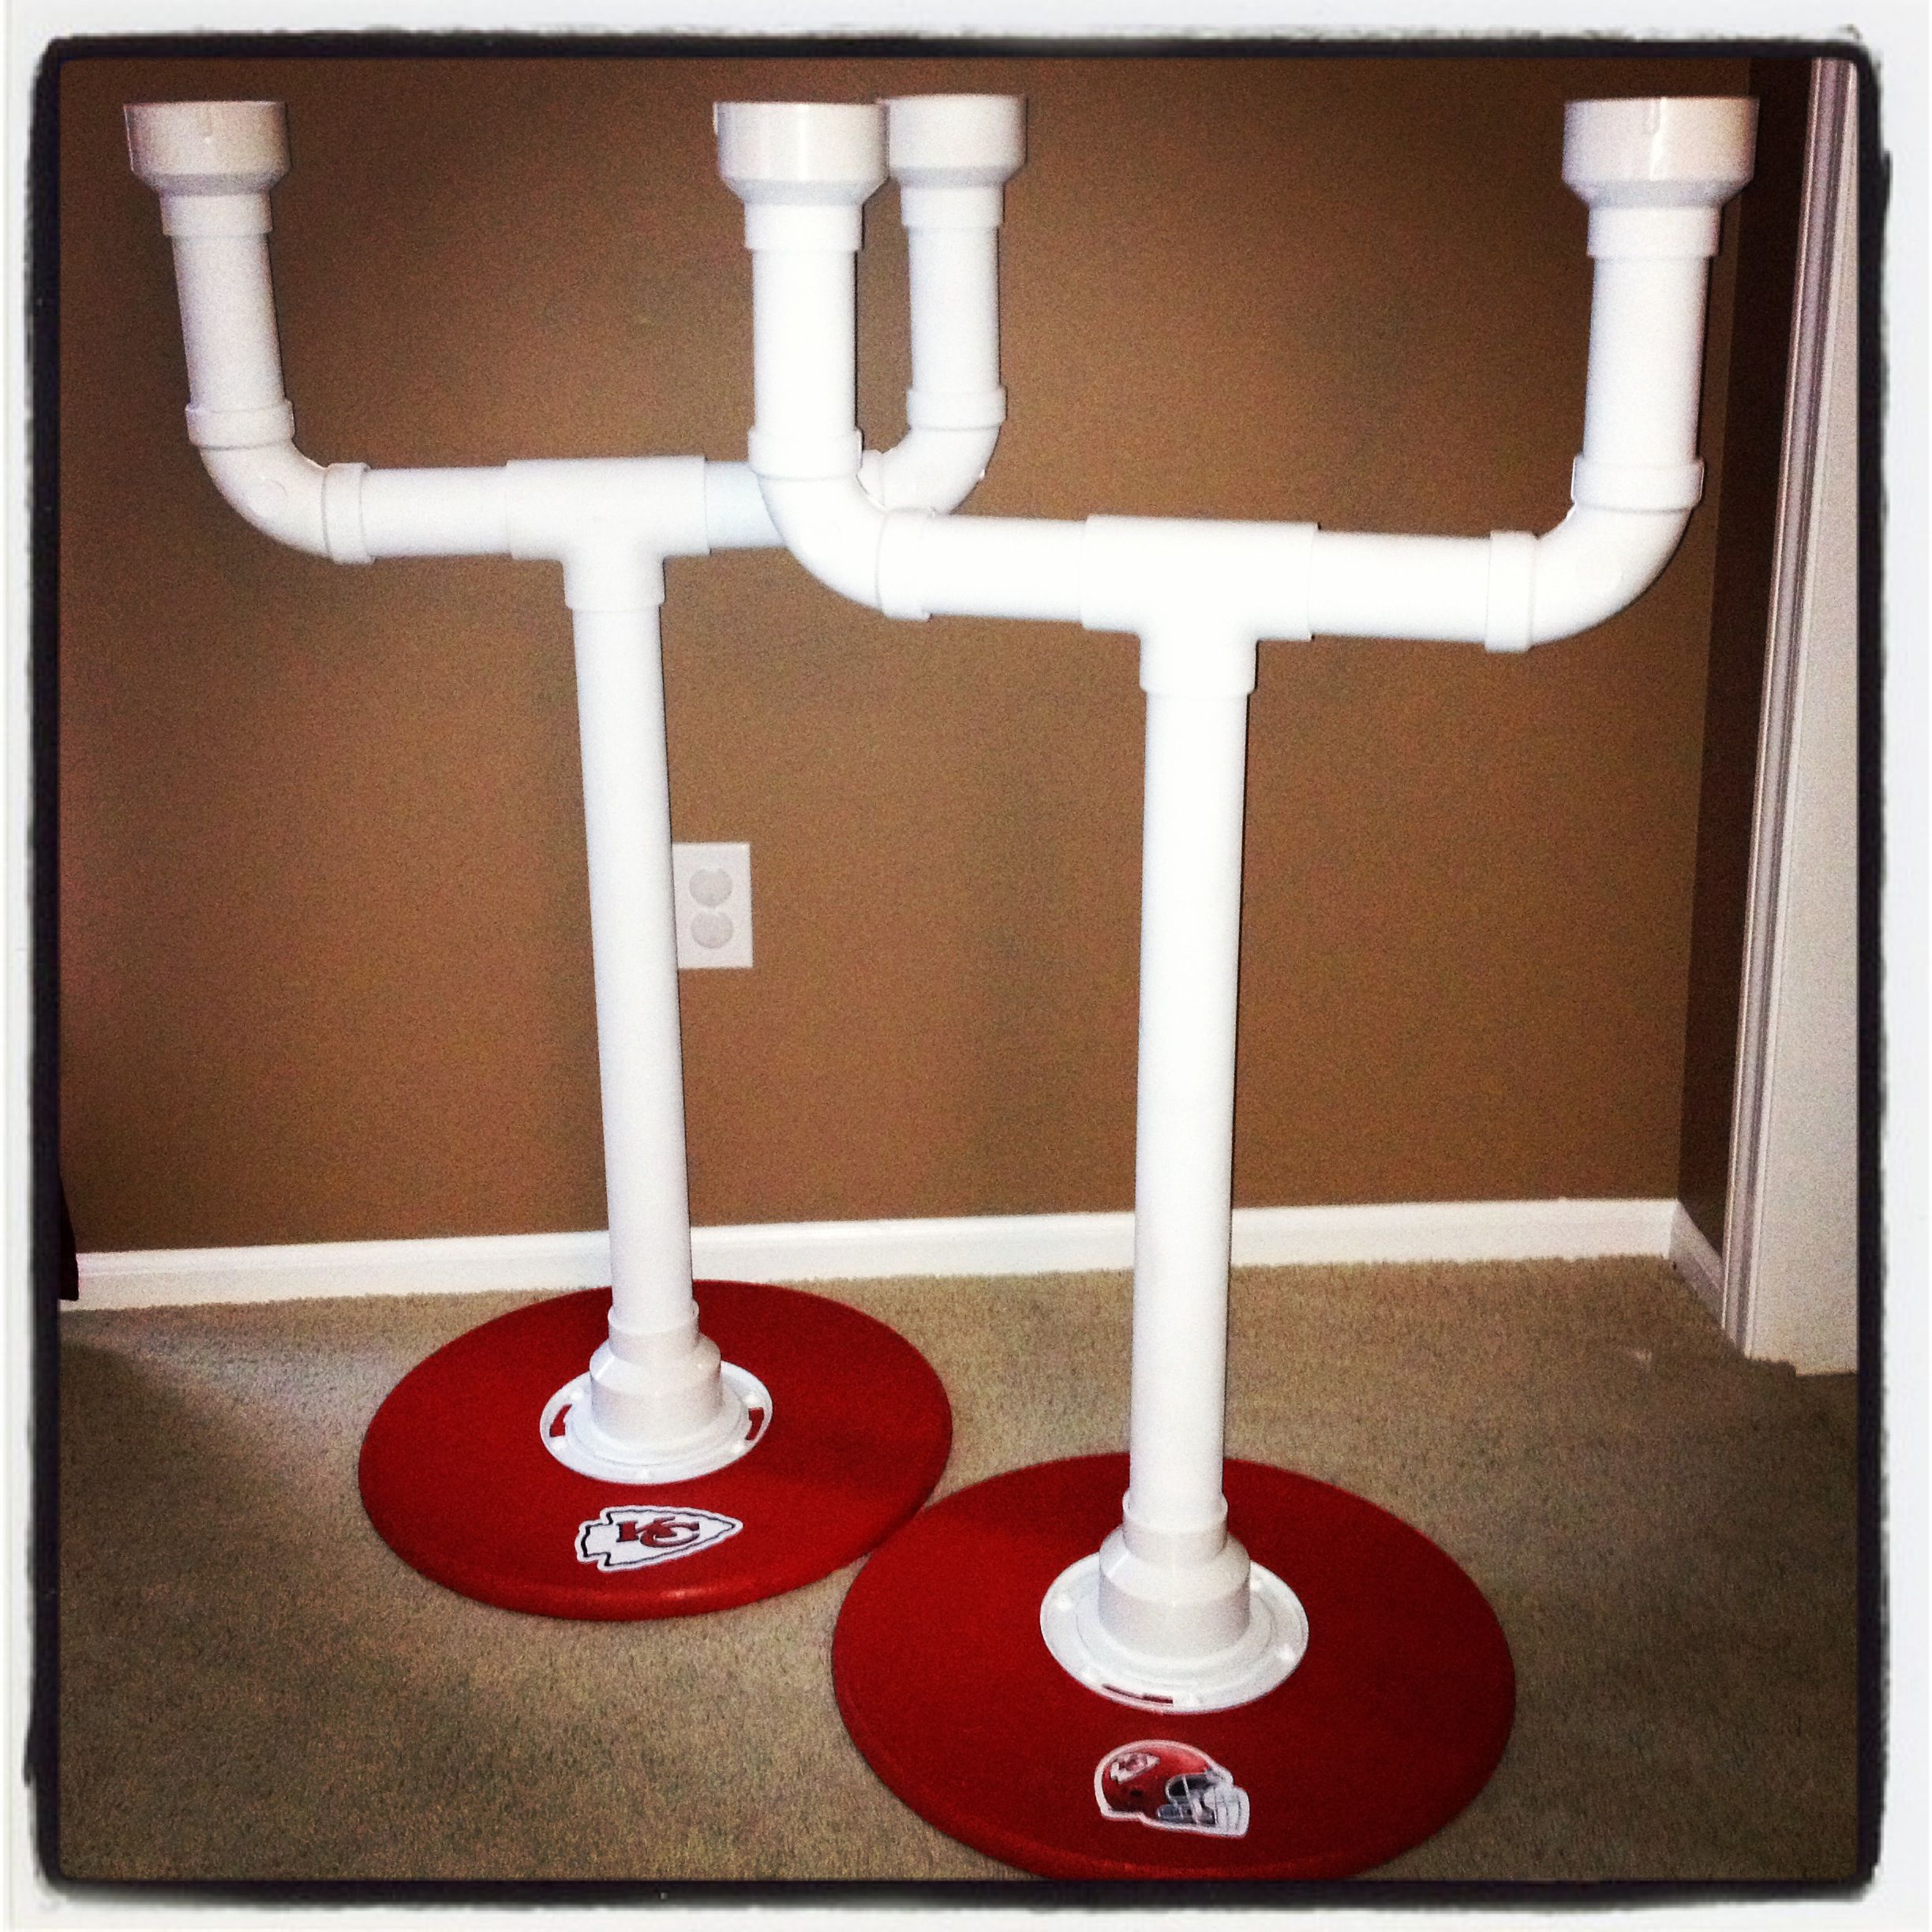 Cornhole Beer Holders Can be made for $25 $35 each Everything you